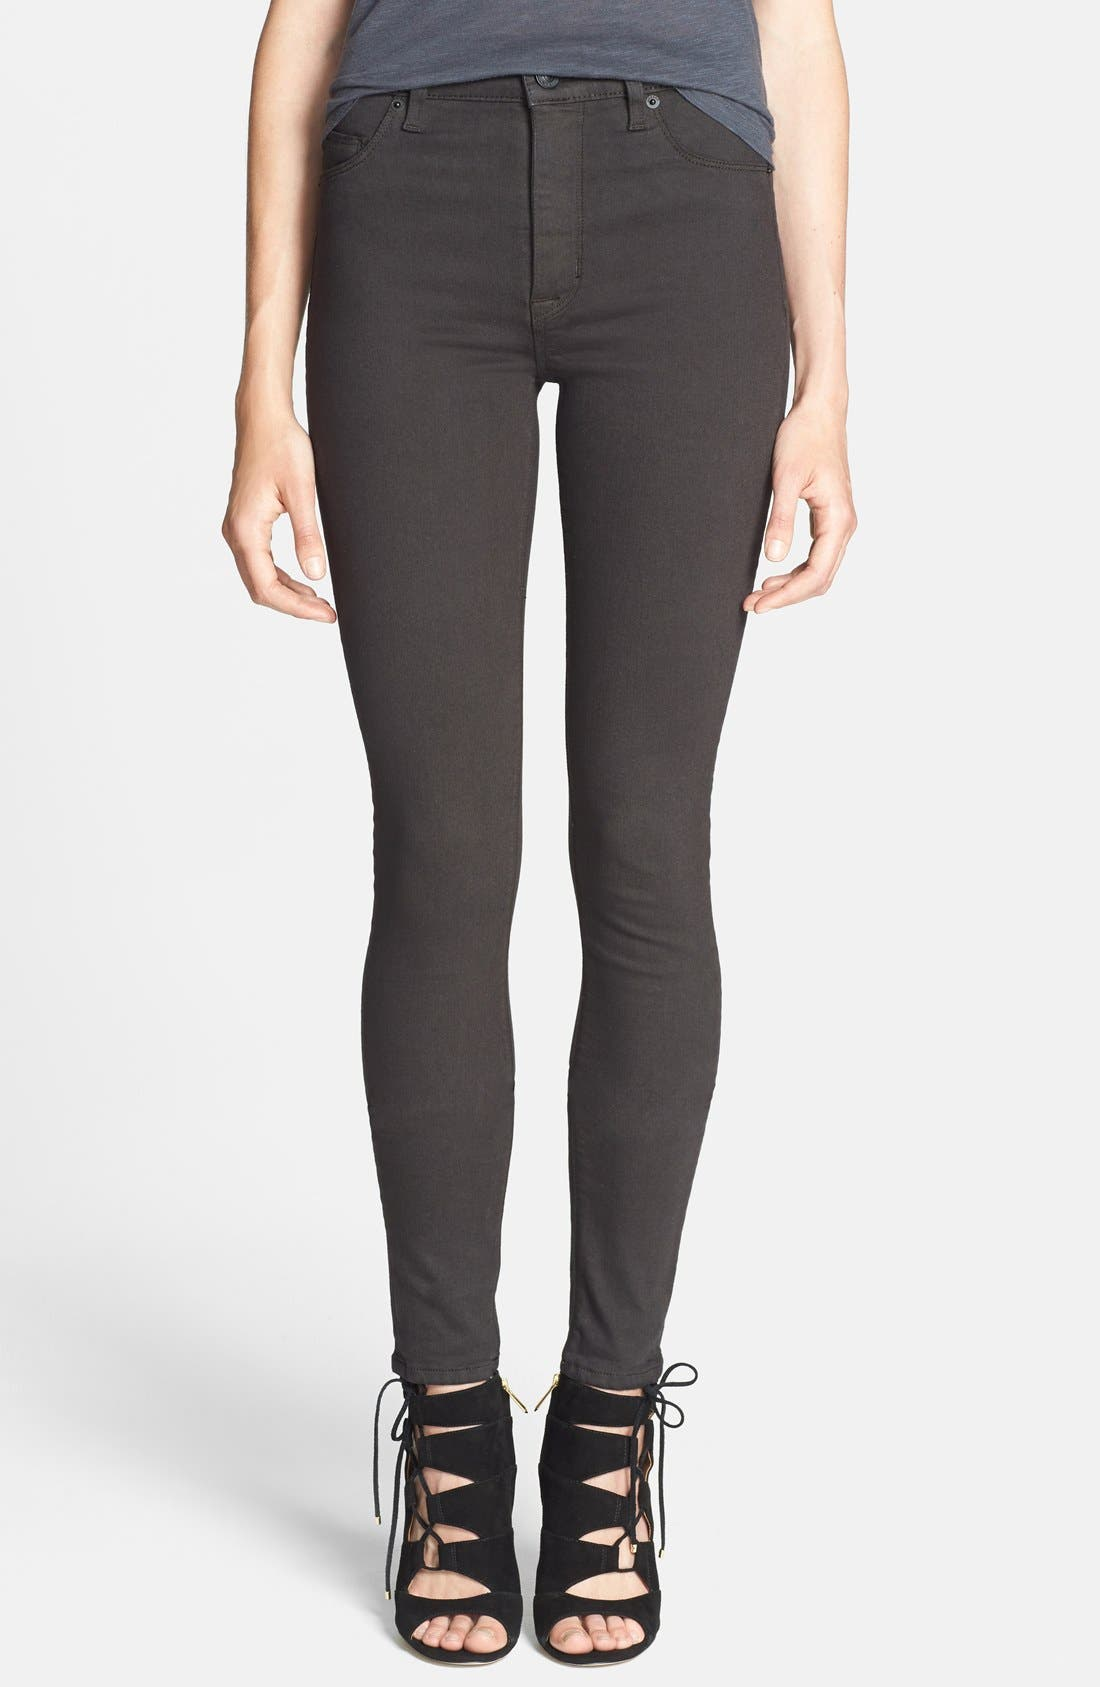 Main Image - Hudson Jeans 'Barbara' High Rise Skinny Jeans (Brown) (Nordstrom Exclusive)